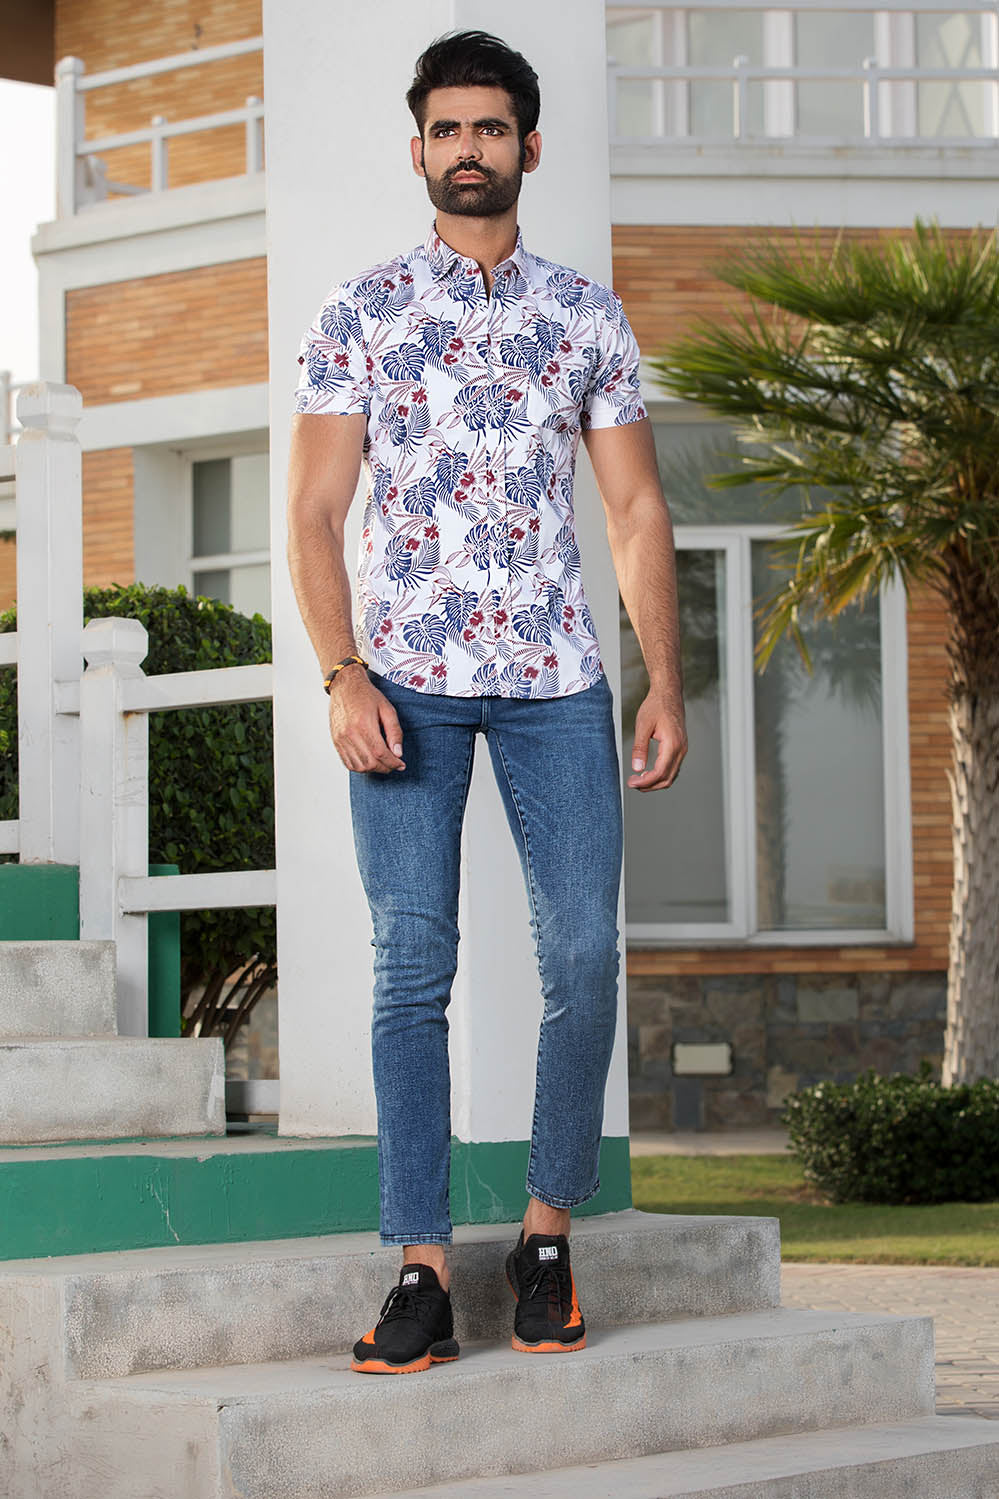 Hawaiian Printed Shirt - HOPE NOT OUT